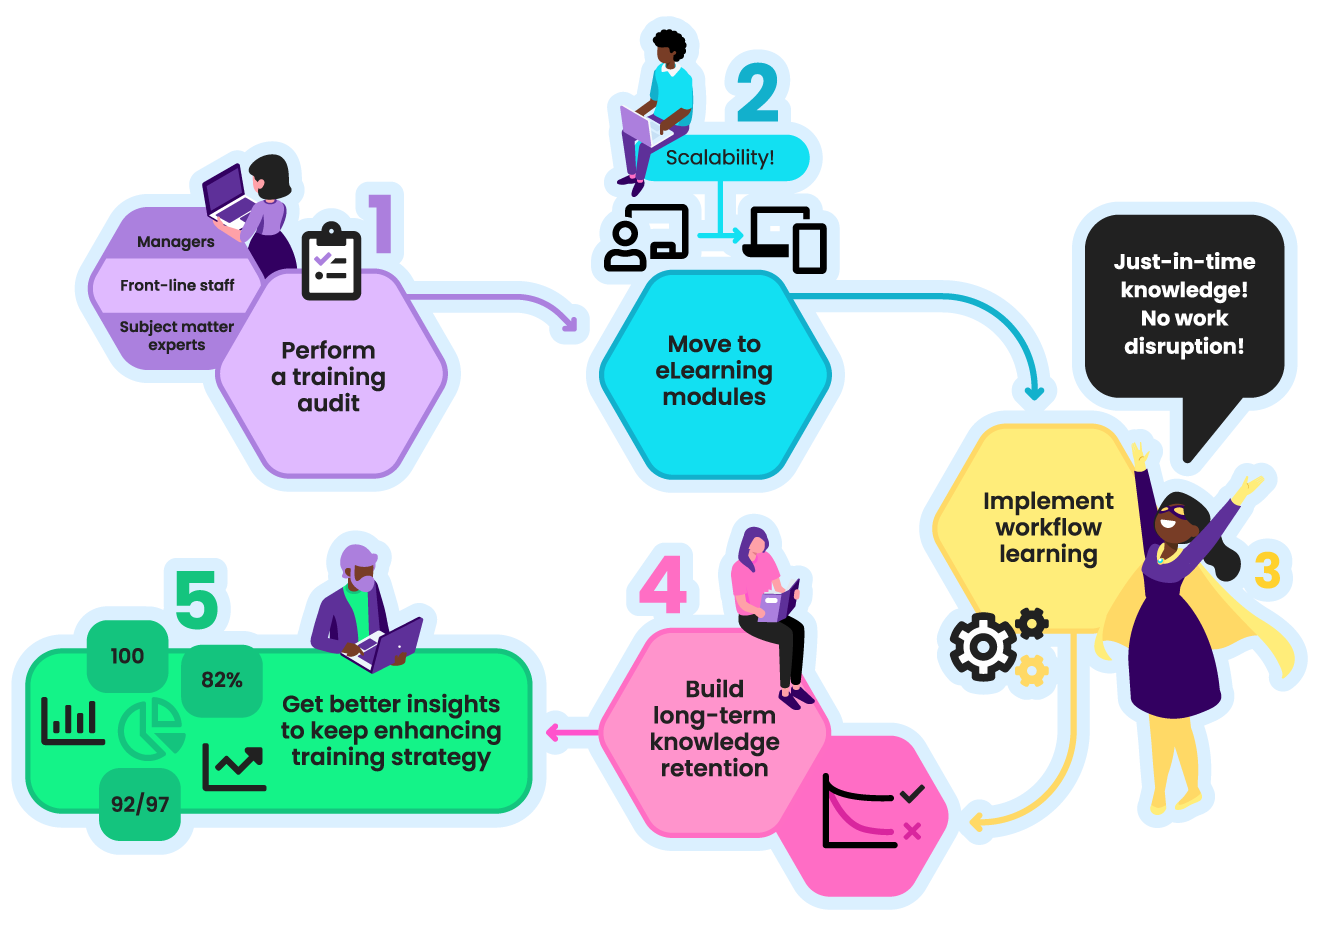 Chart showing the flow of the five stages: perform a training audit; move to eLearning modules; implement workflow learning; build long-term retention; focus on performance-driven training.